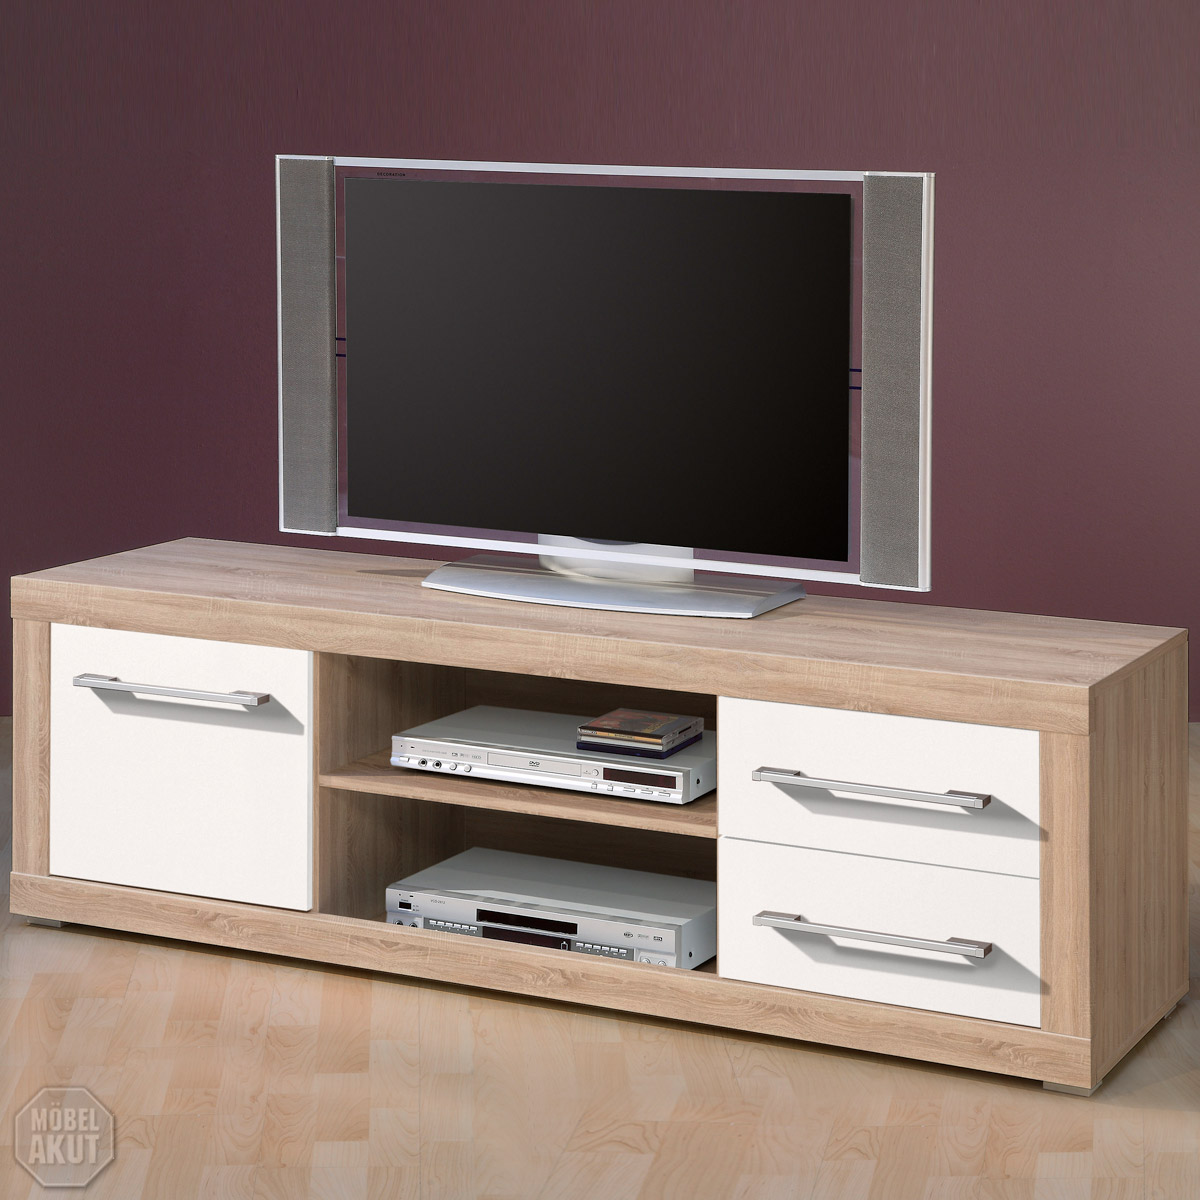 tv board cabo lowboard in sonoma eiche sagerau weiss glanz 155x52 cm ebay. Black Bedroom Furniture Sets. Home Design Ideas